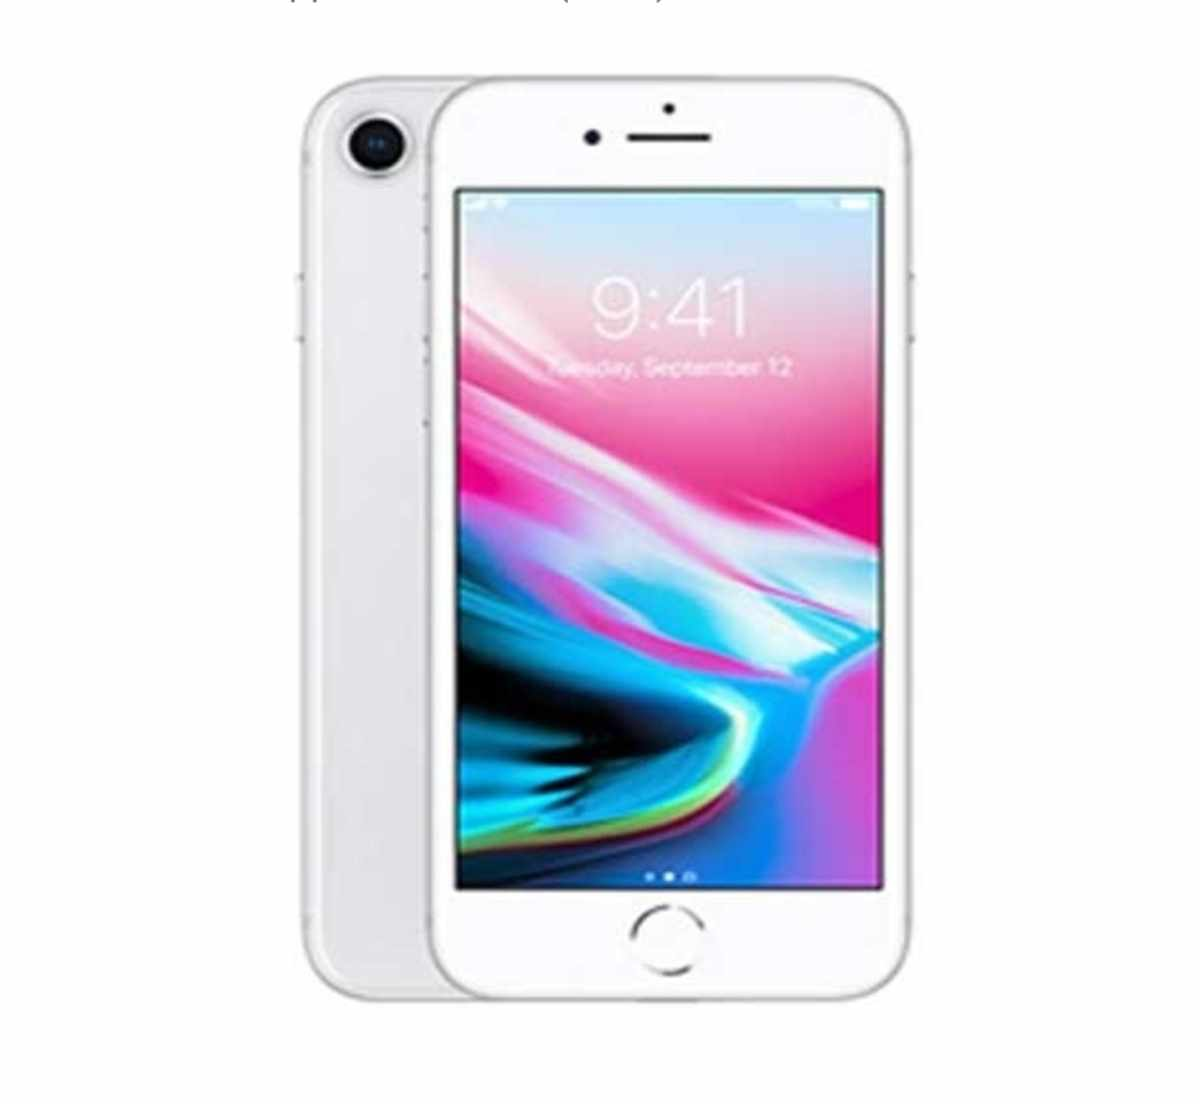 iPhone SE 2020, iPhone SE 2020 price in Nigeria, iPhone SE 2020 price in Nigeria, iphone se 2020 specs and price in Nigeria, iPhone se 2020 specs, iPhone SE 2020 price, how much is iPhone SE 2020, price of iPhone SE 2020 in Nigeria, iPhone SE 2020 in Nigeria, iPhone se 2020 in USA, iPhone se 2020 in Dubai UAE